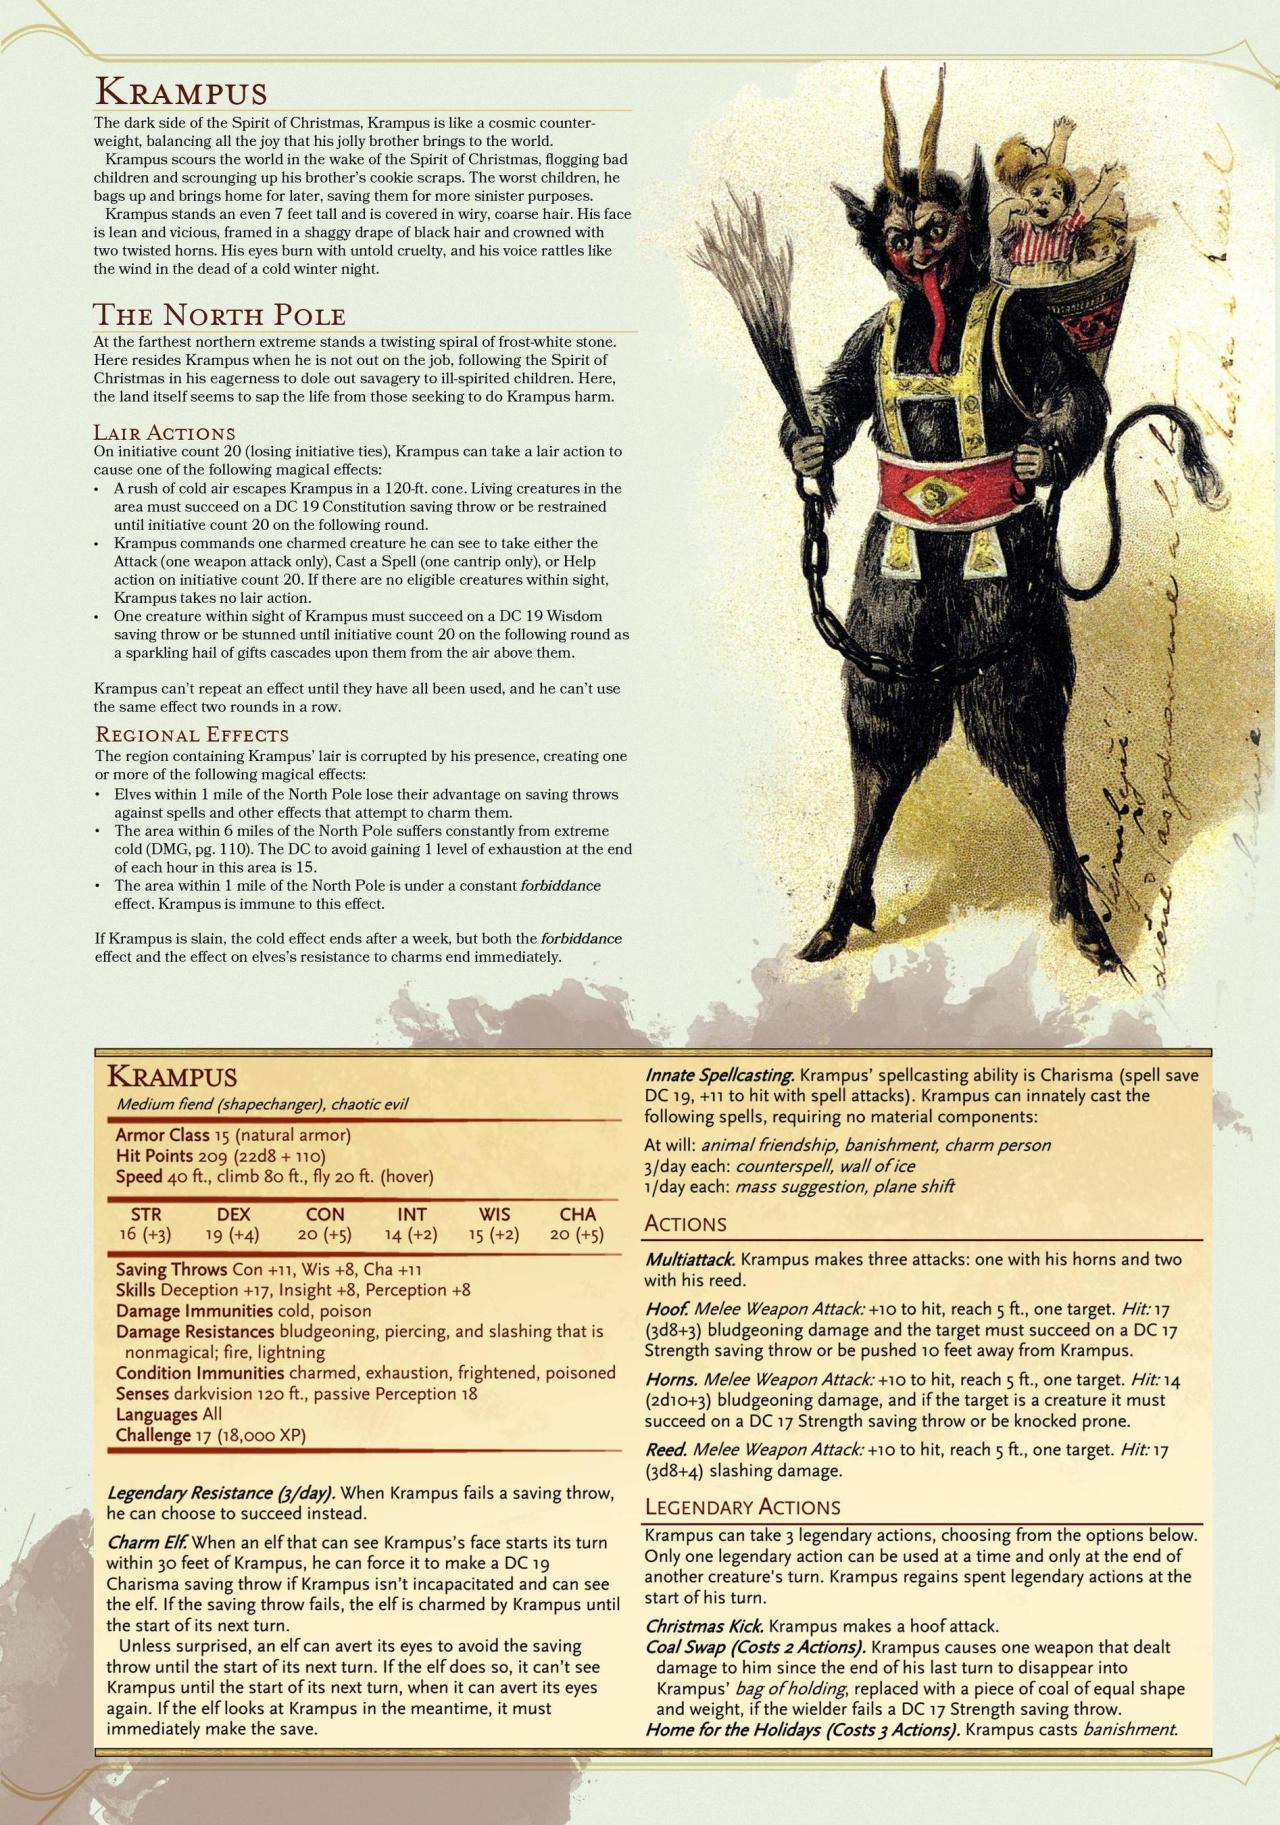 dnd 5e monster manual online